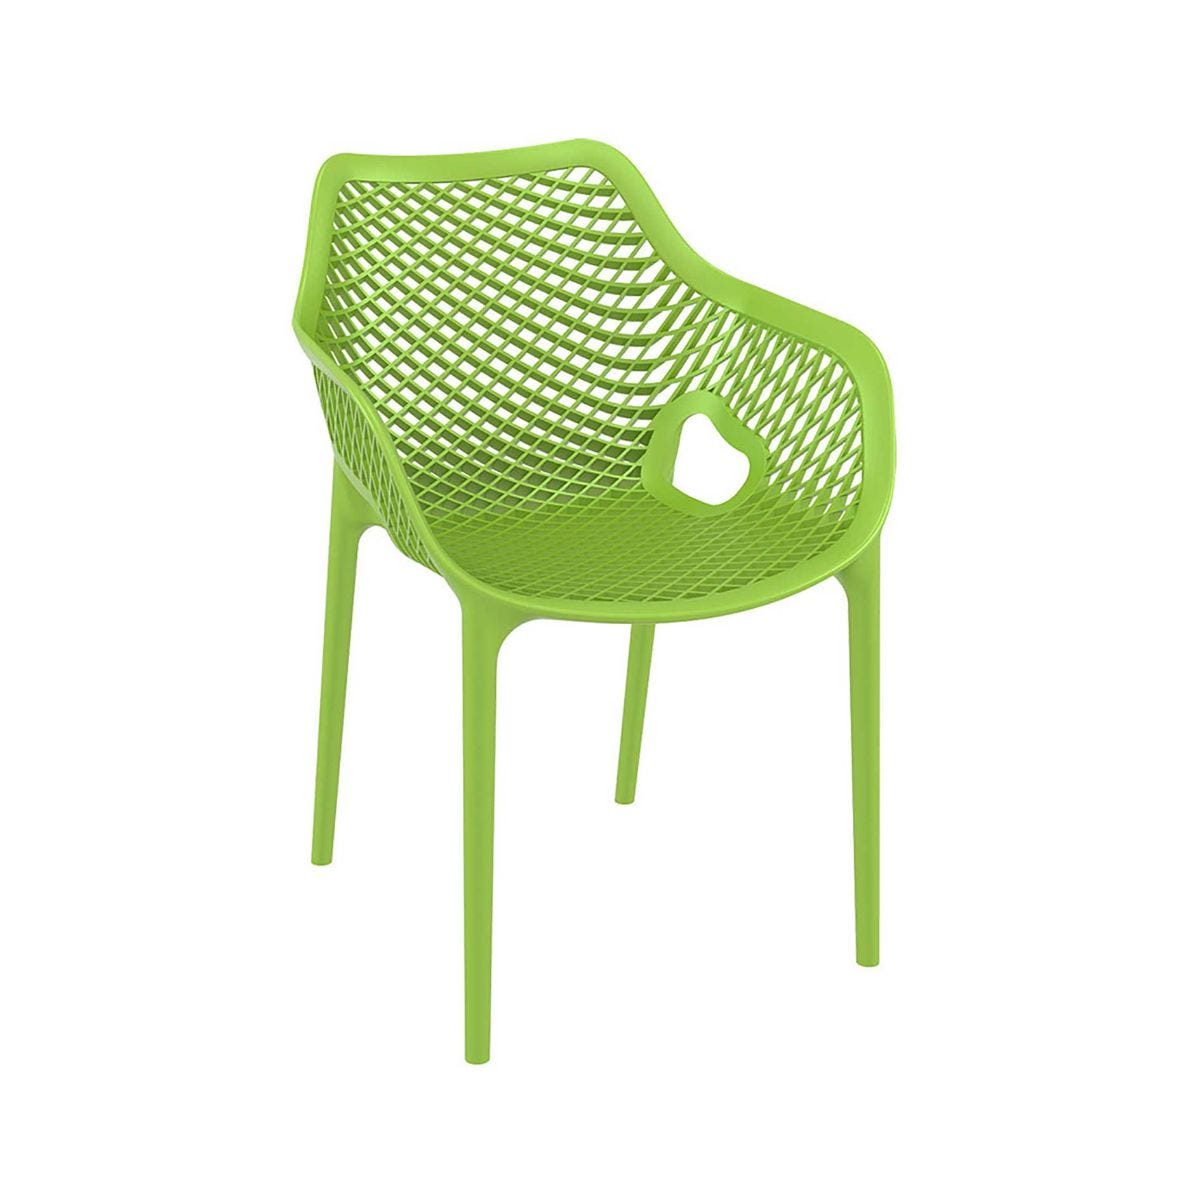 Spring Outdoor Arm Chair, Tropical Green